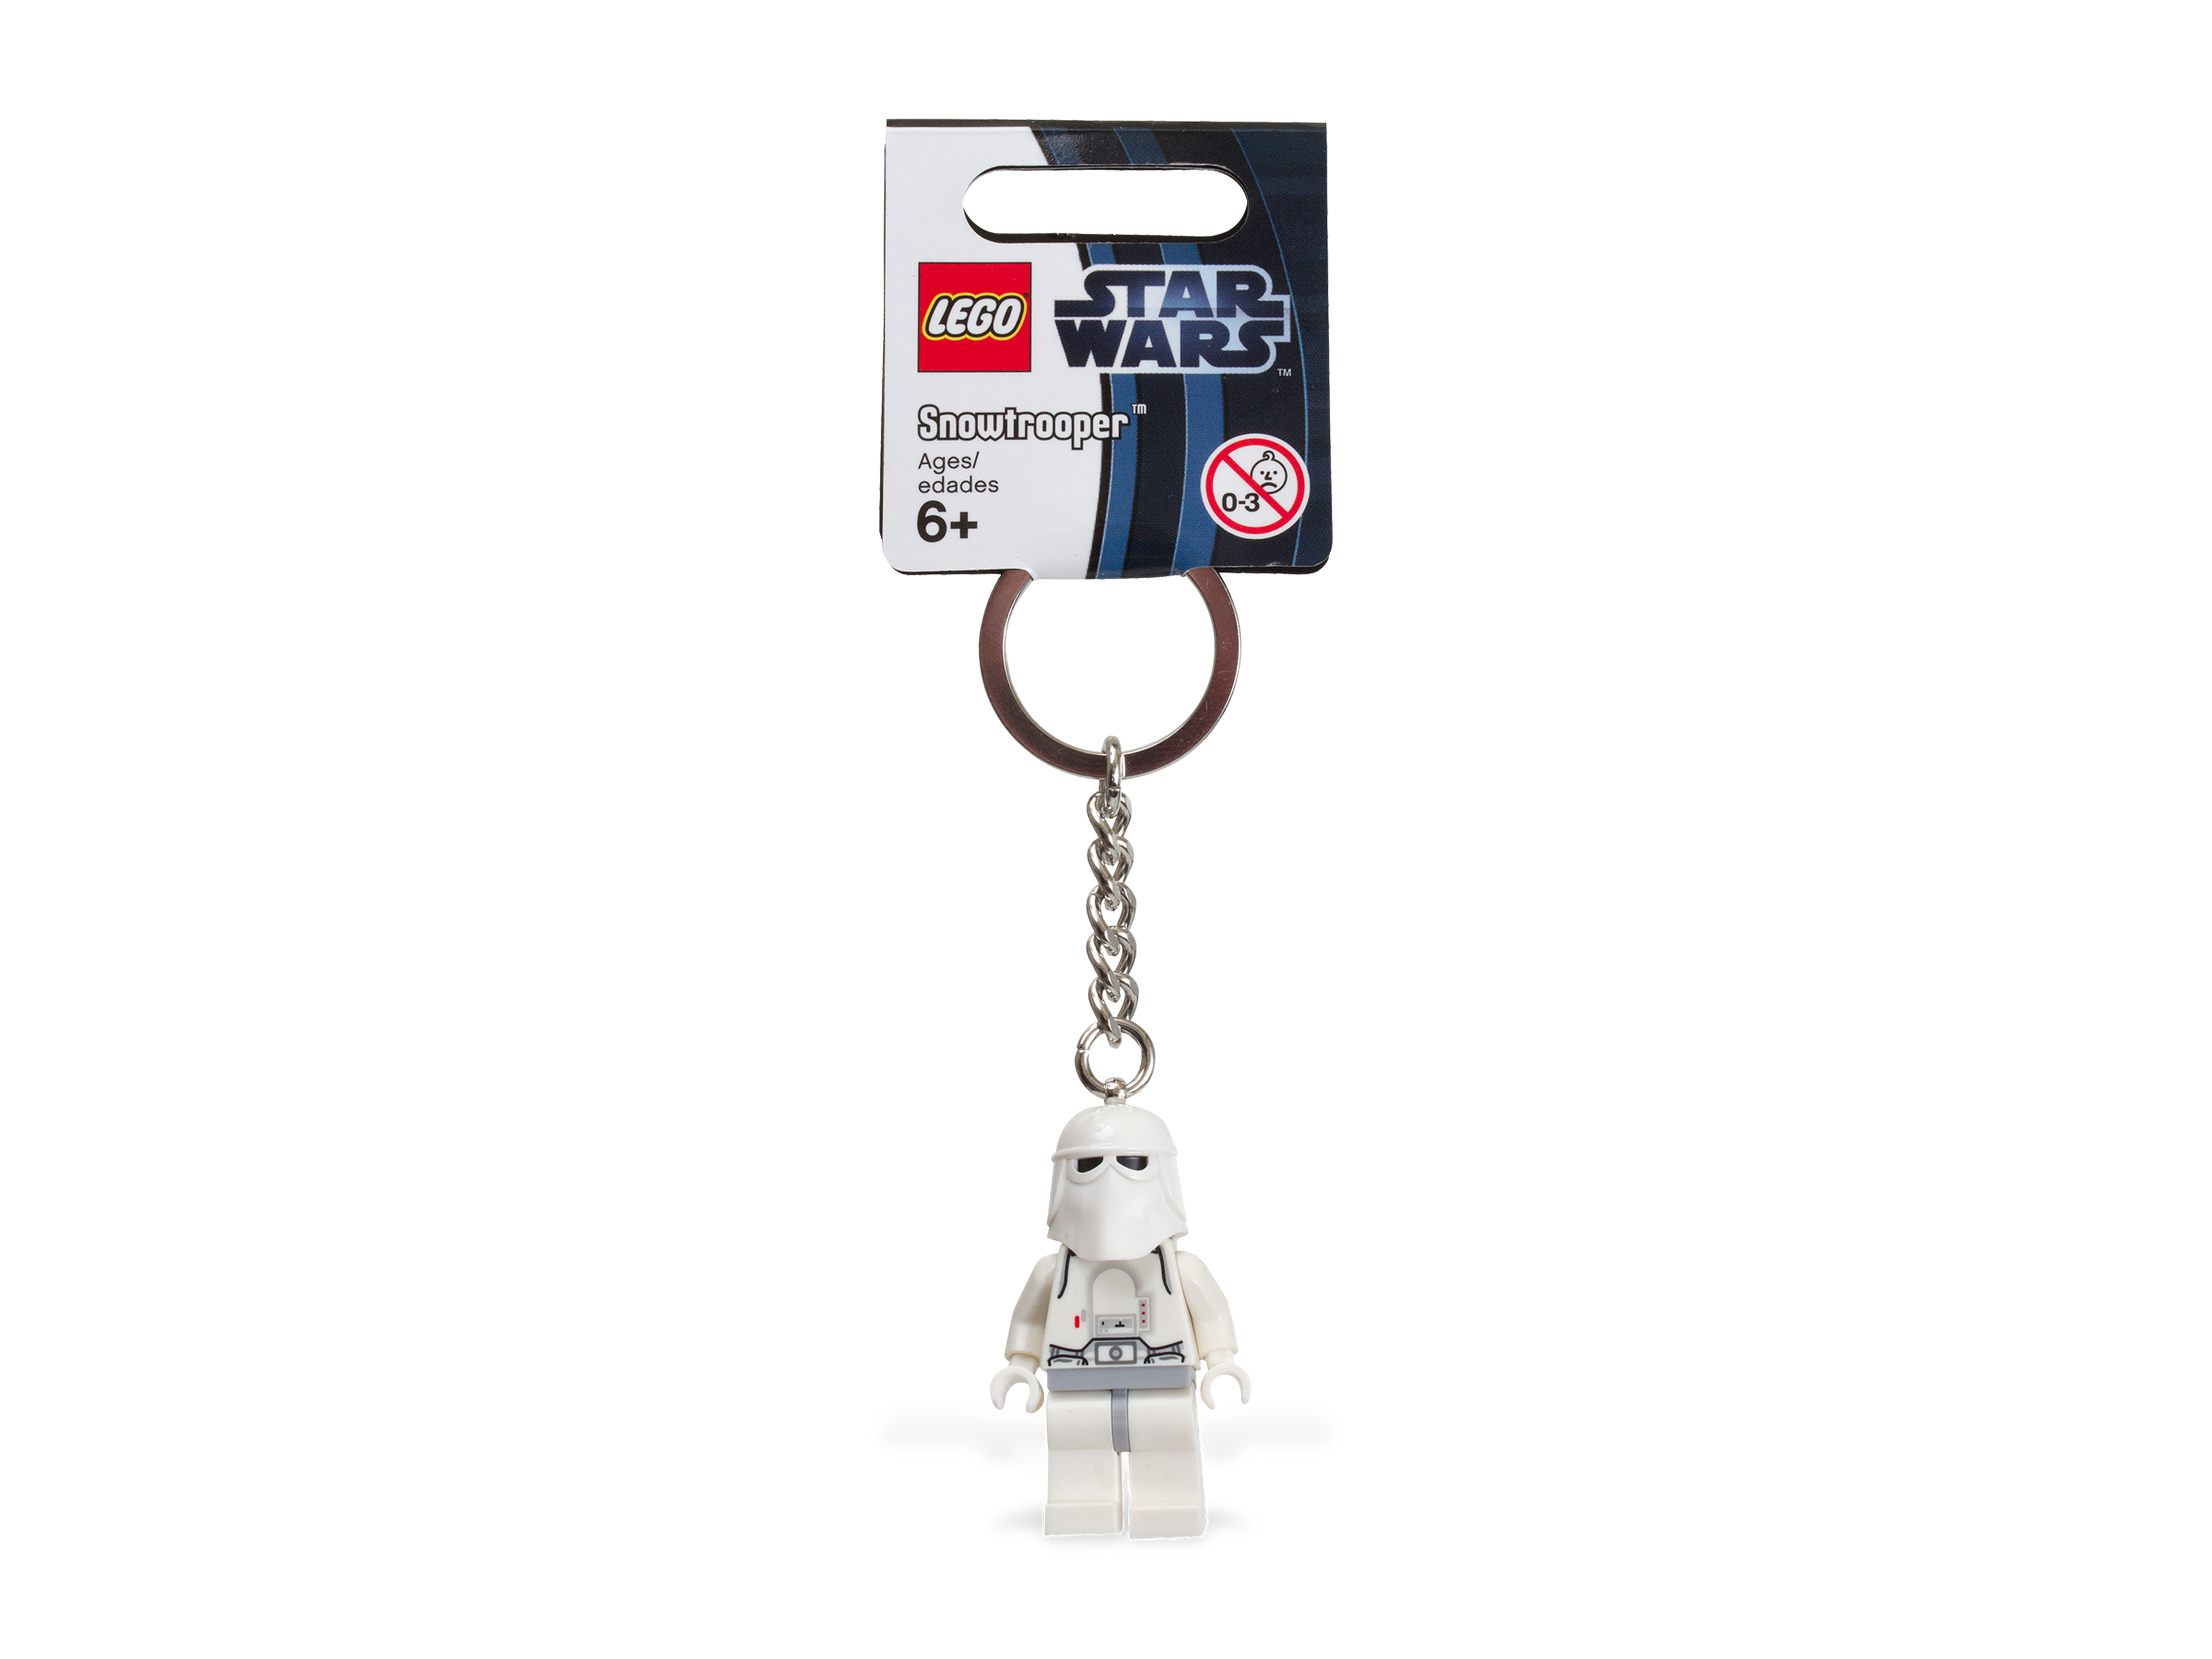 850447 Snowtrooper Key Chain